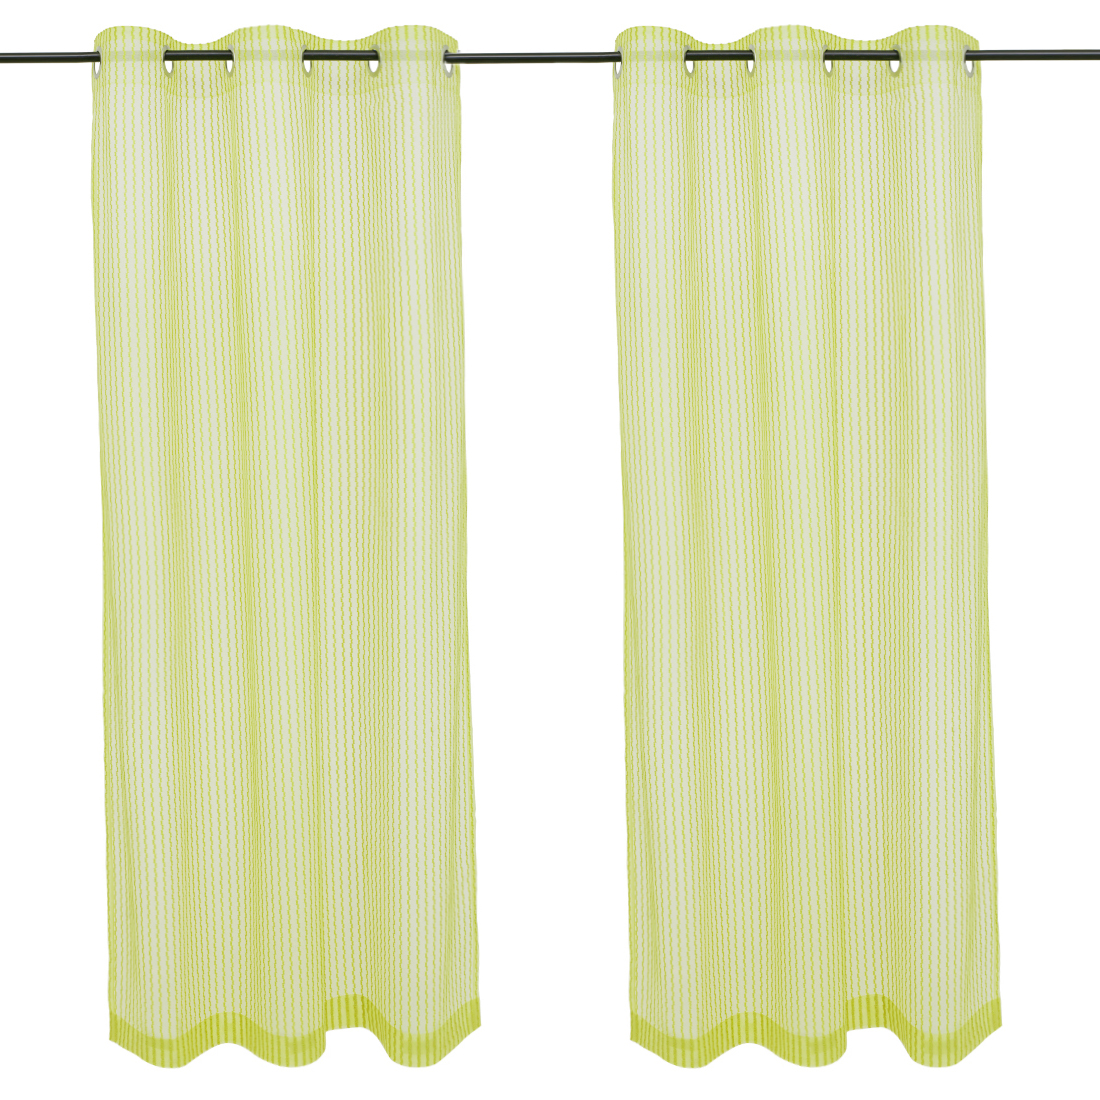 Amour set of 2 Polyester Door Curtains in Citron Colour by Living Essence